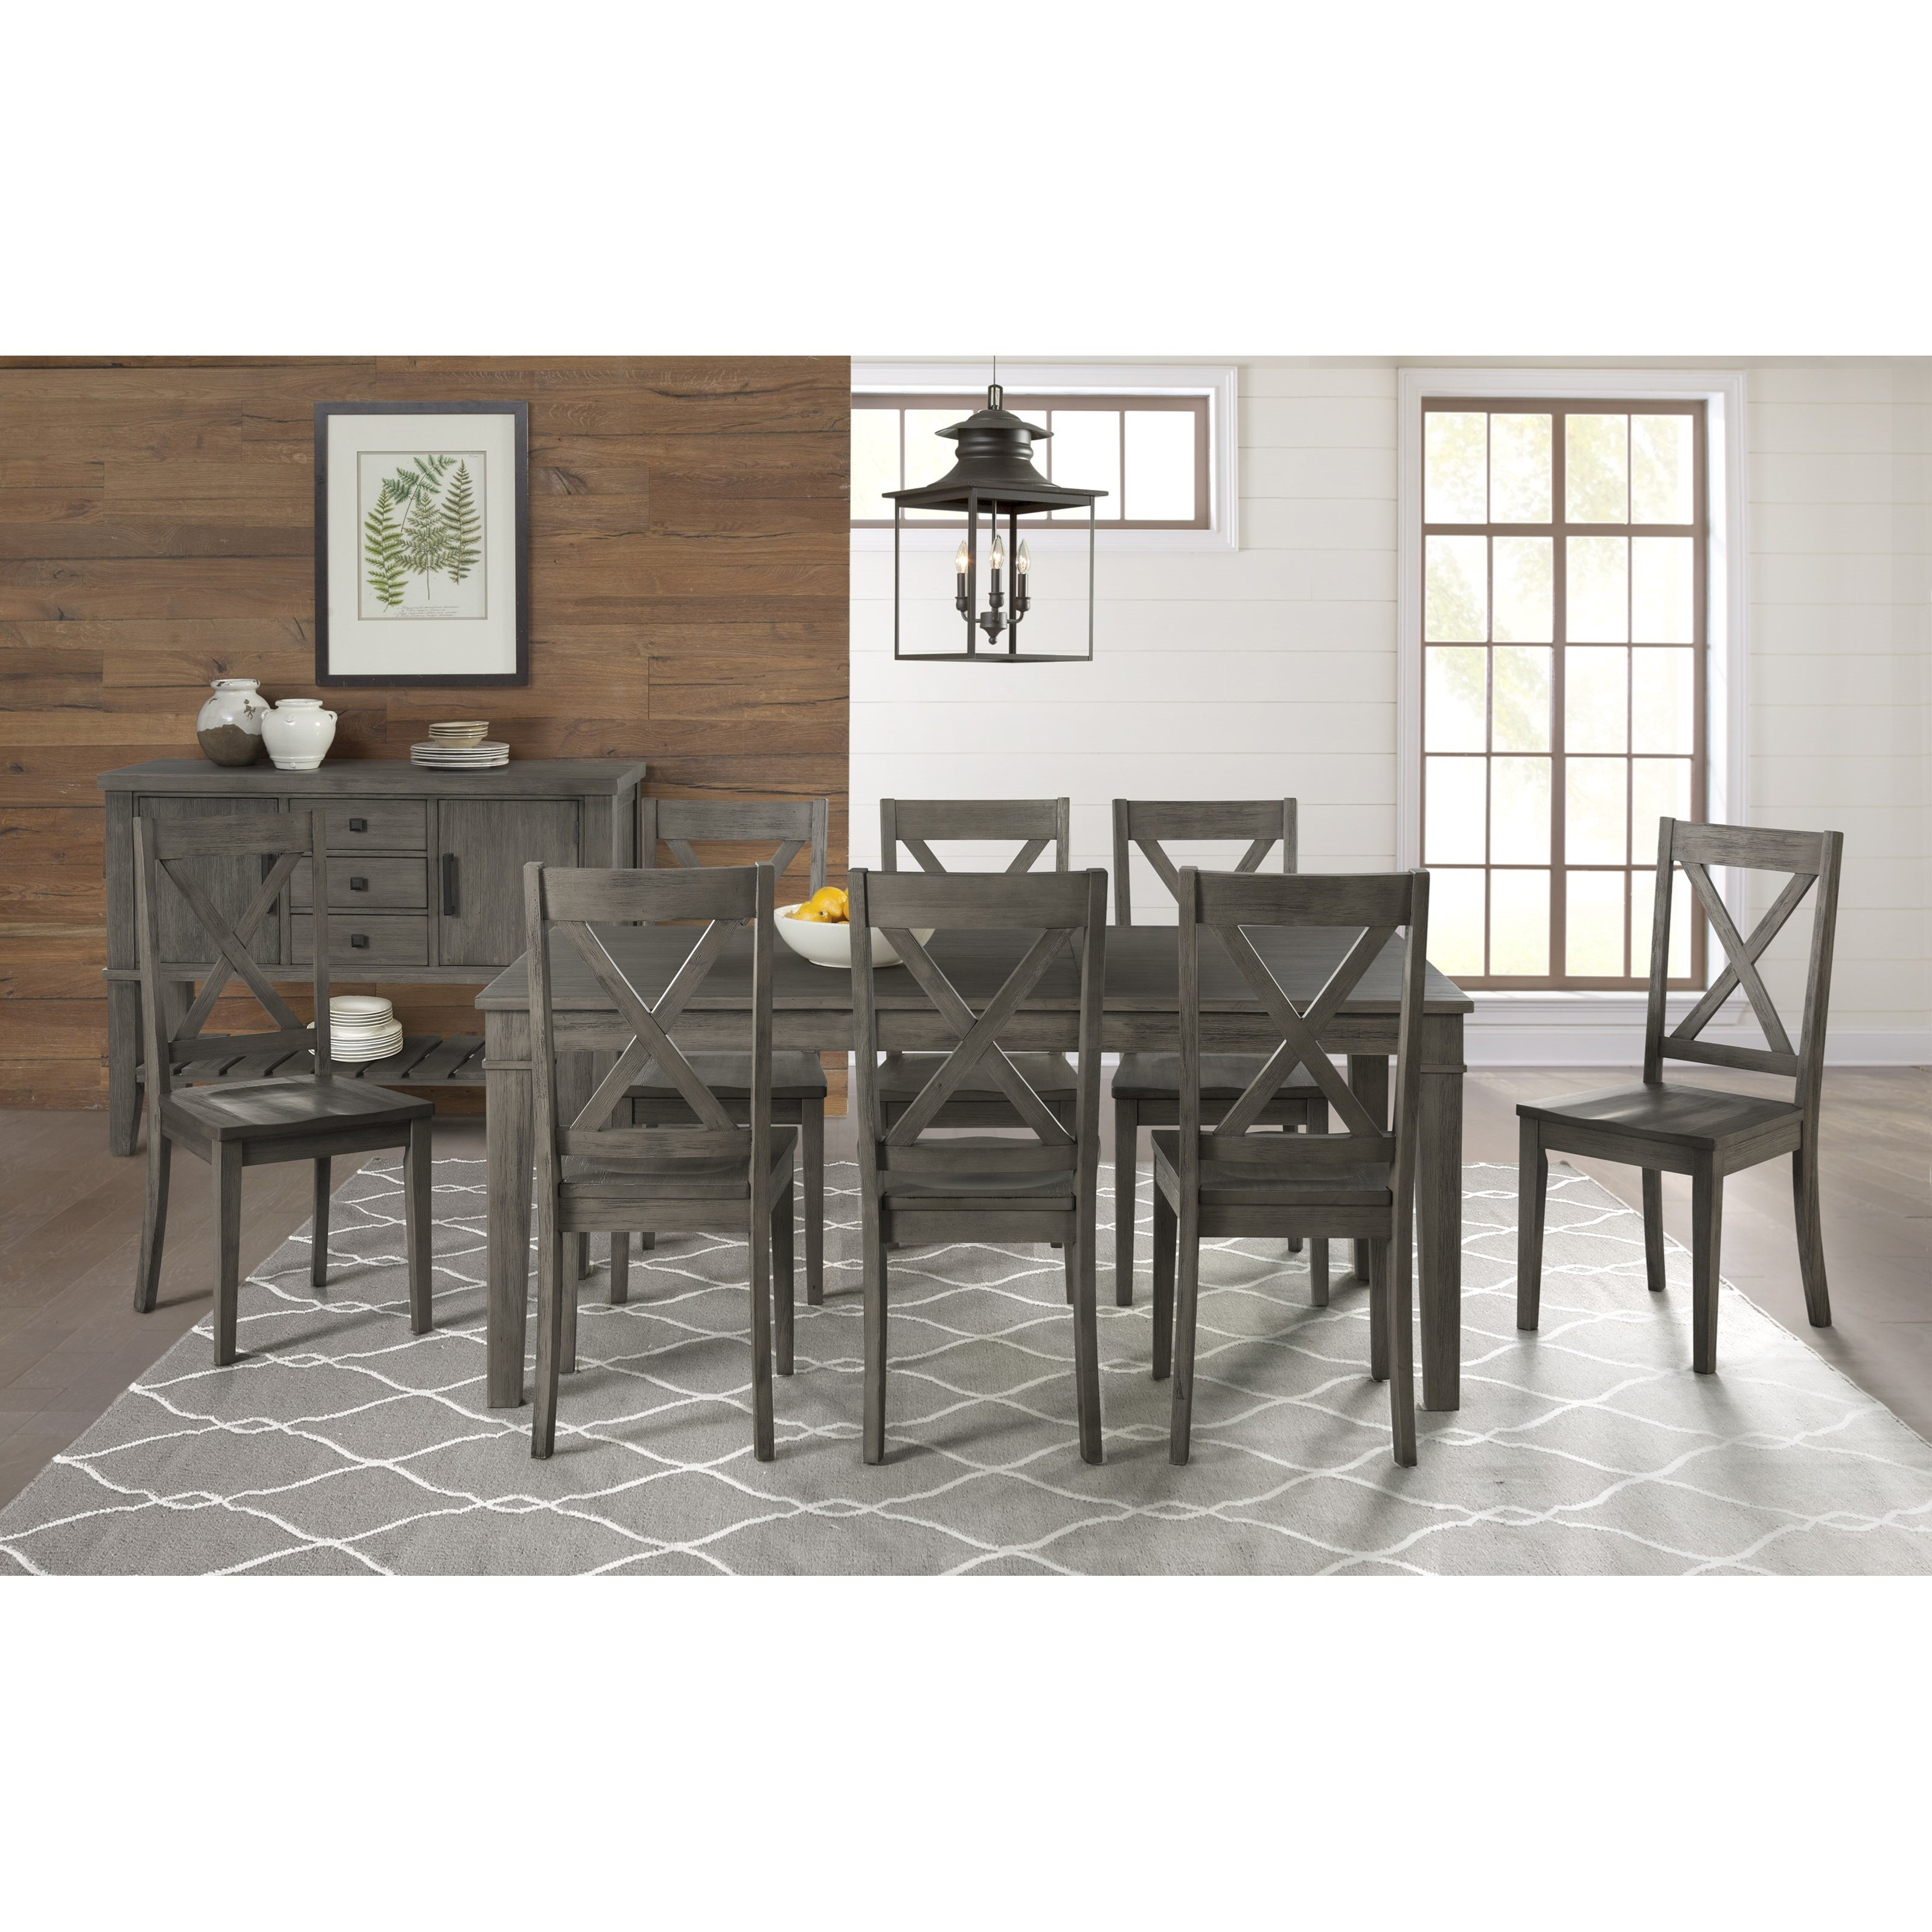 Aamerica huron casual dining room group fashion for Casual dining room chairs